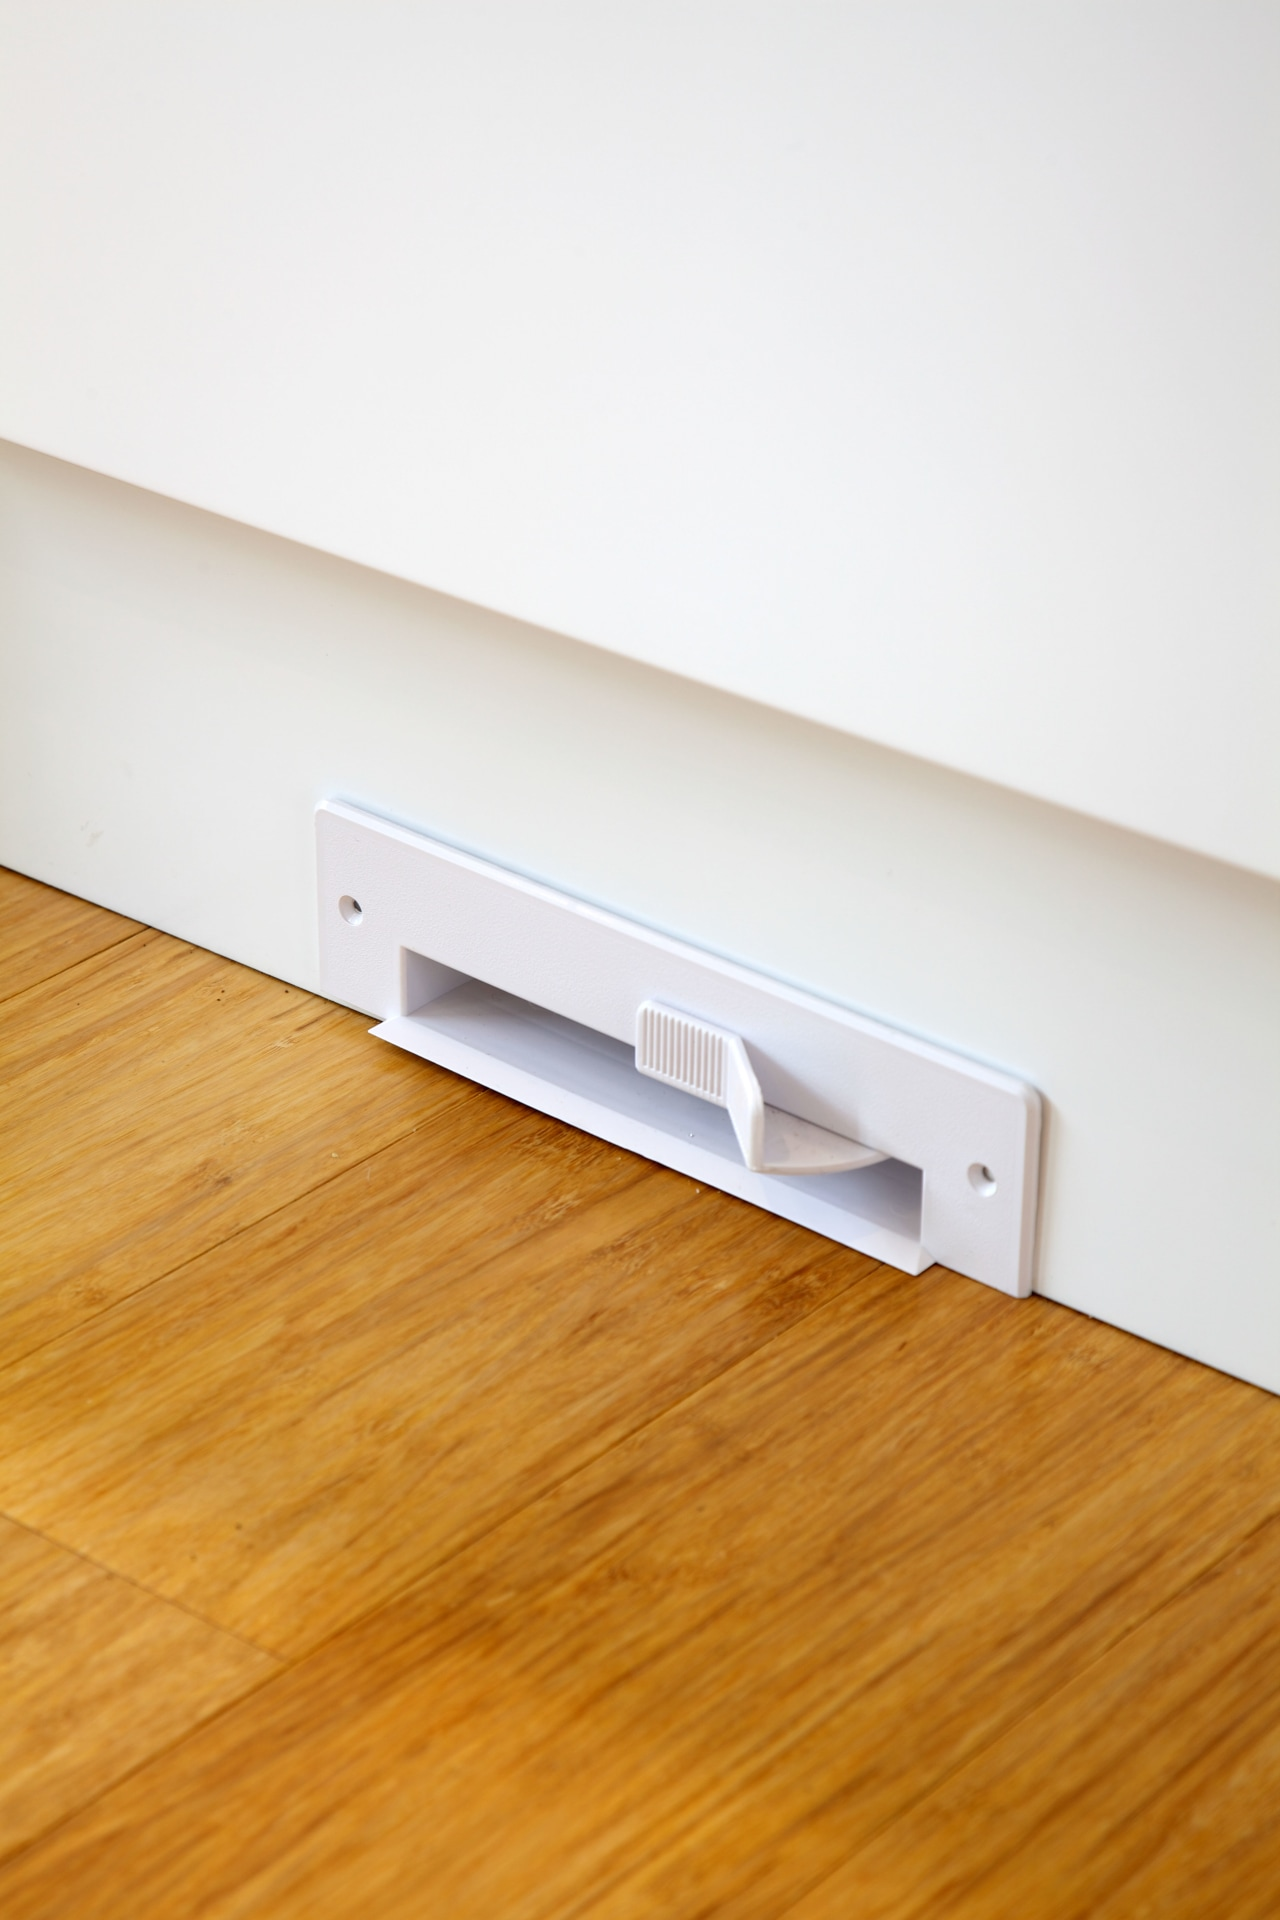 A vacuum vent in the kitchen can be floor, flooring, furniture, hardwood, laminate flooring, line, product design, table, wall, wood, wood flooring, white, orange